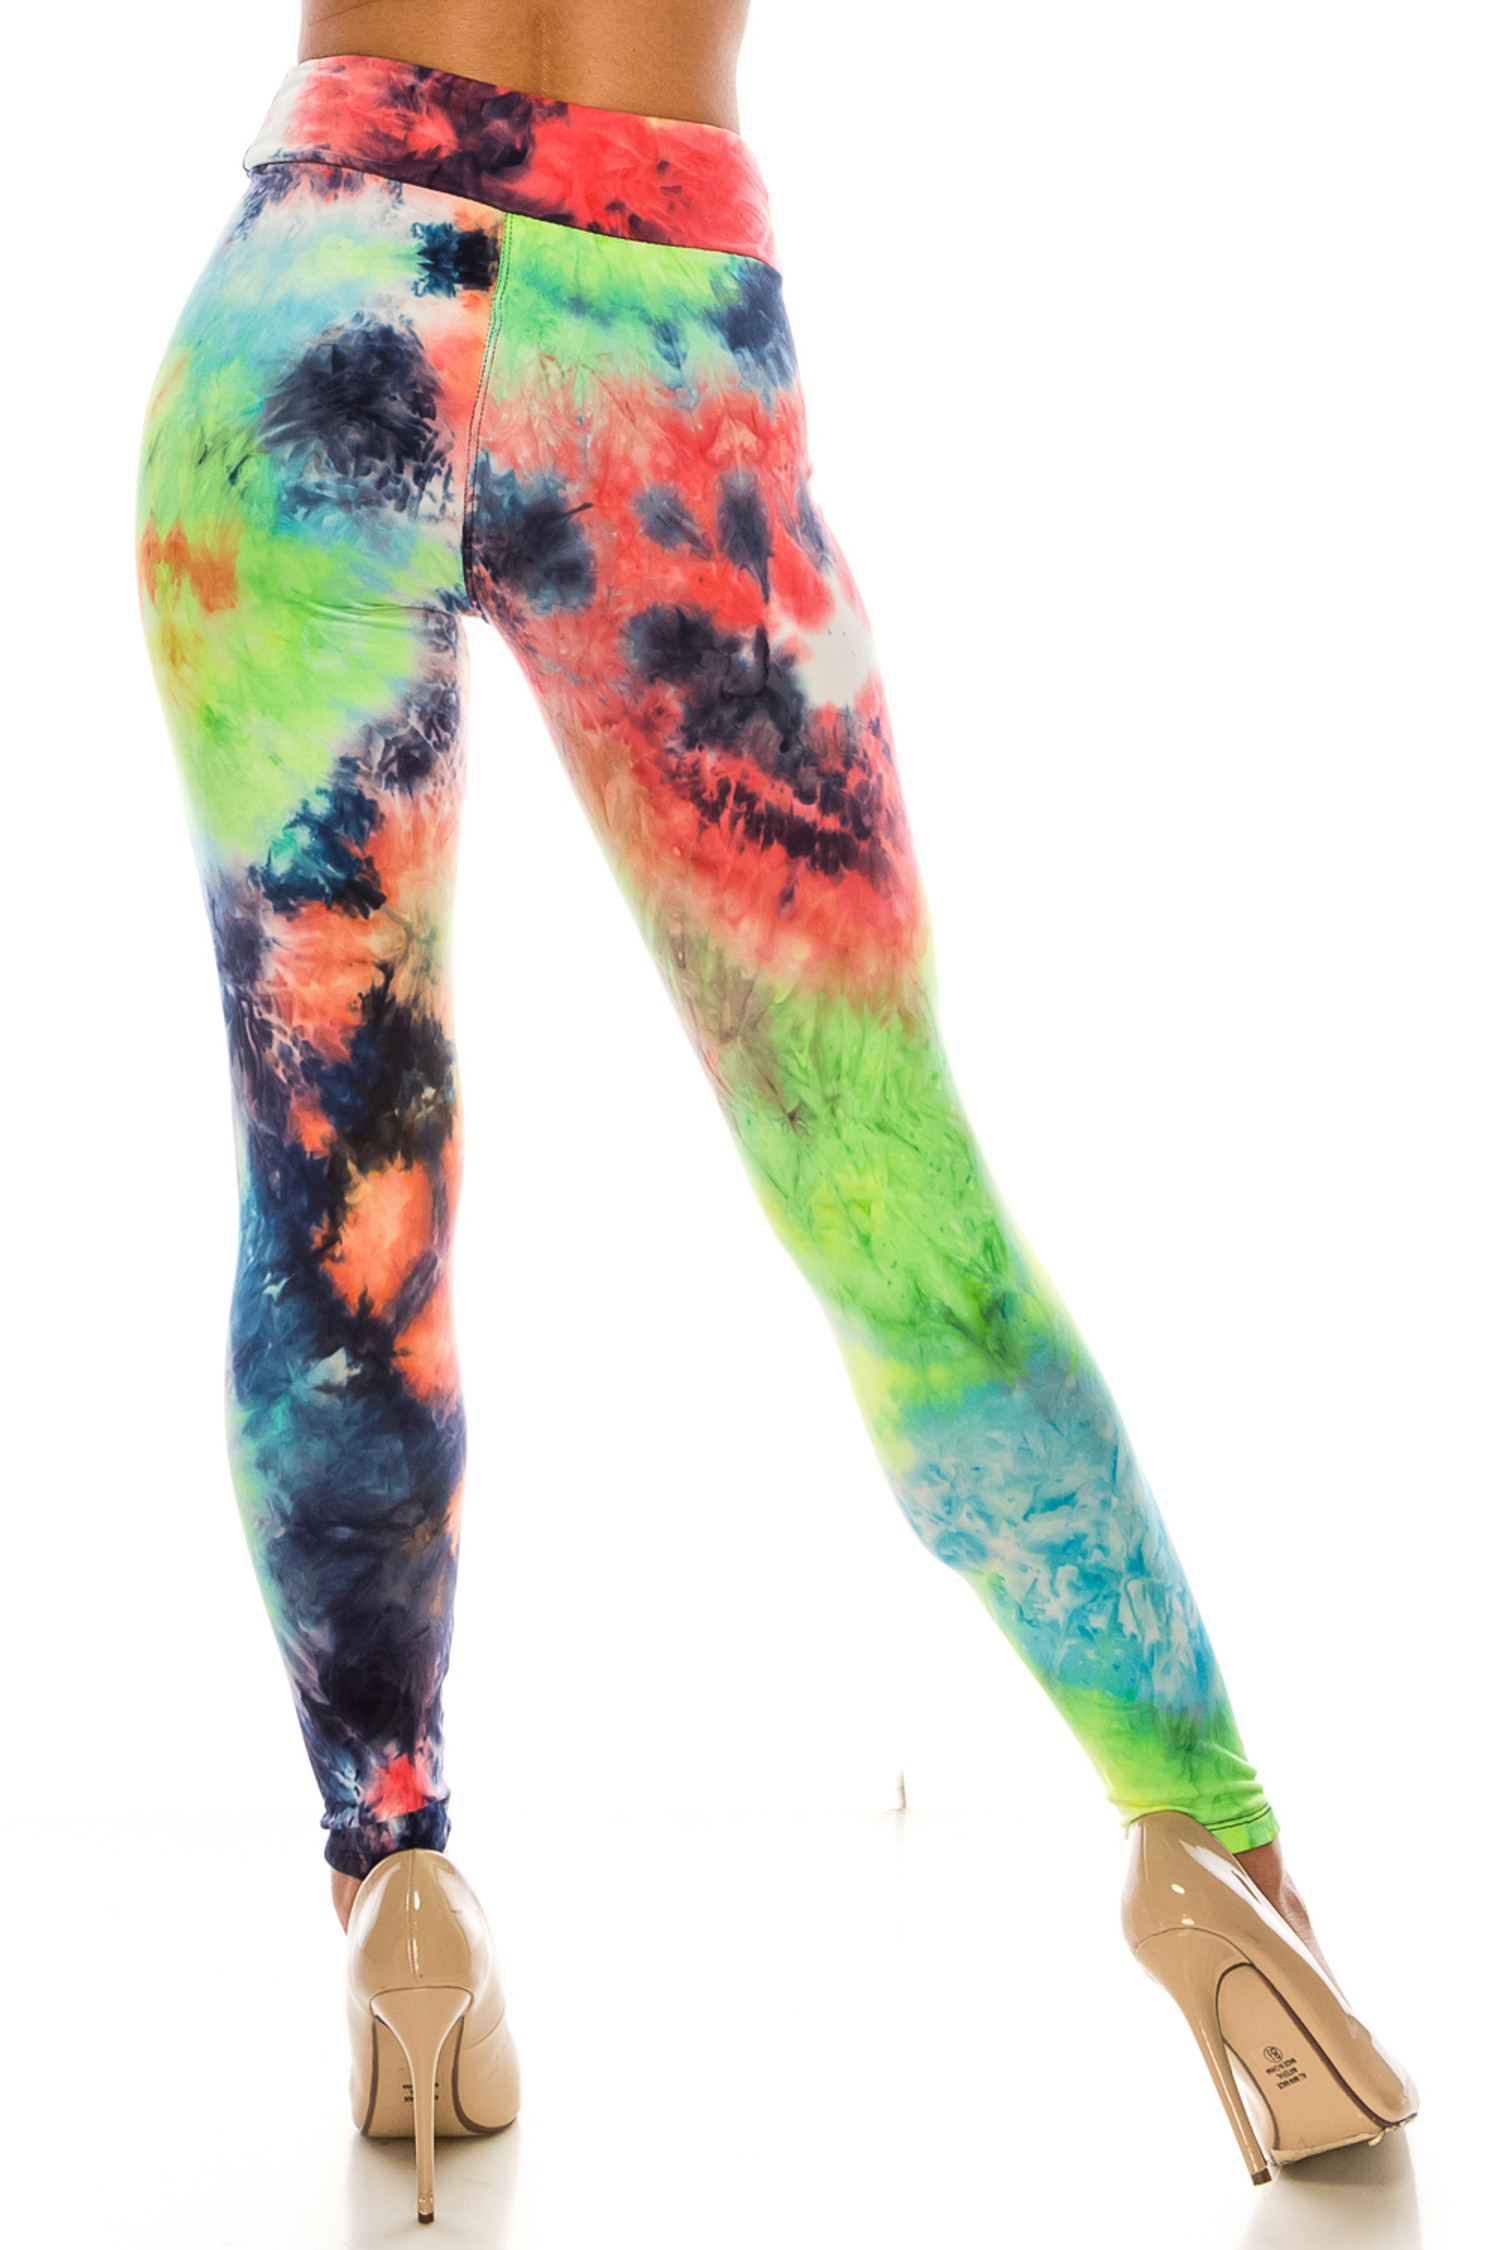 Rear view of Buttery Soft Summer Yellow Tie Dye High Waisted Leggings showing off the fabulous continuation of the rainbow colored design.